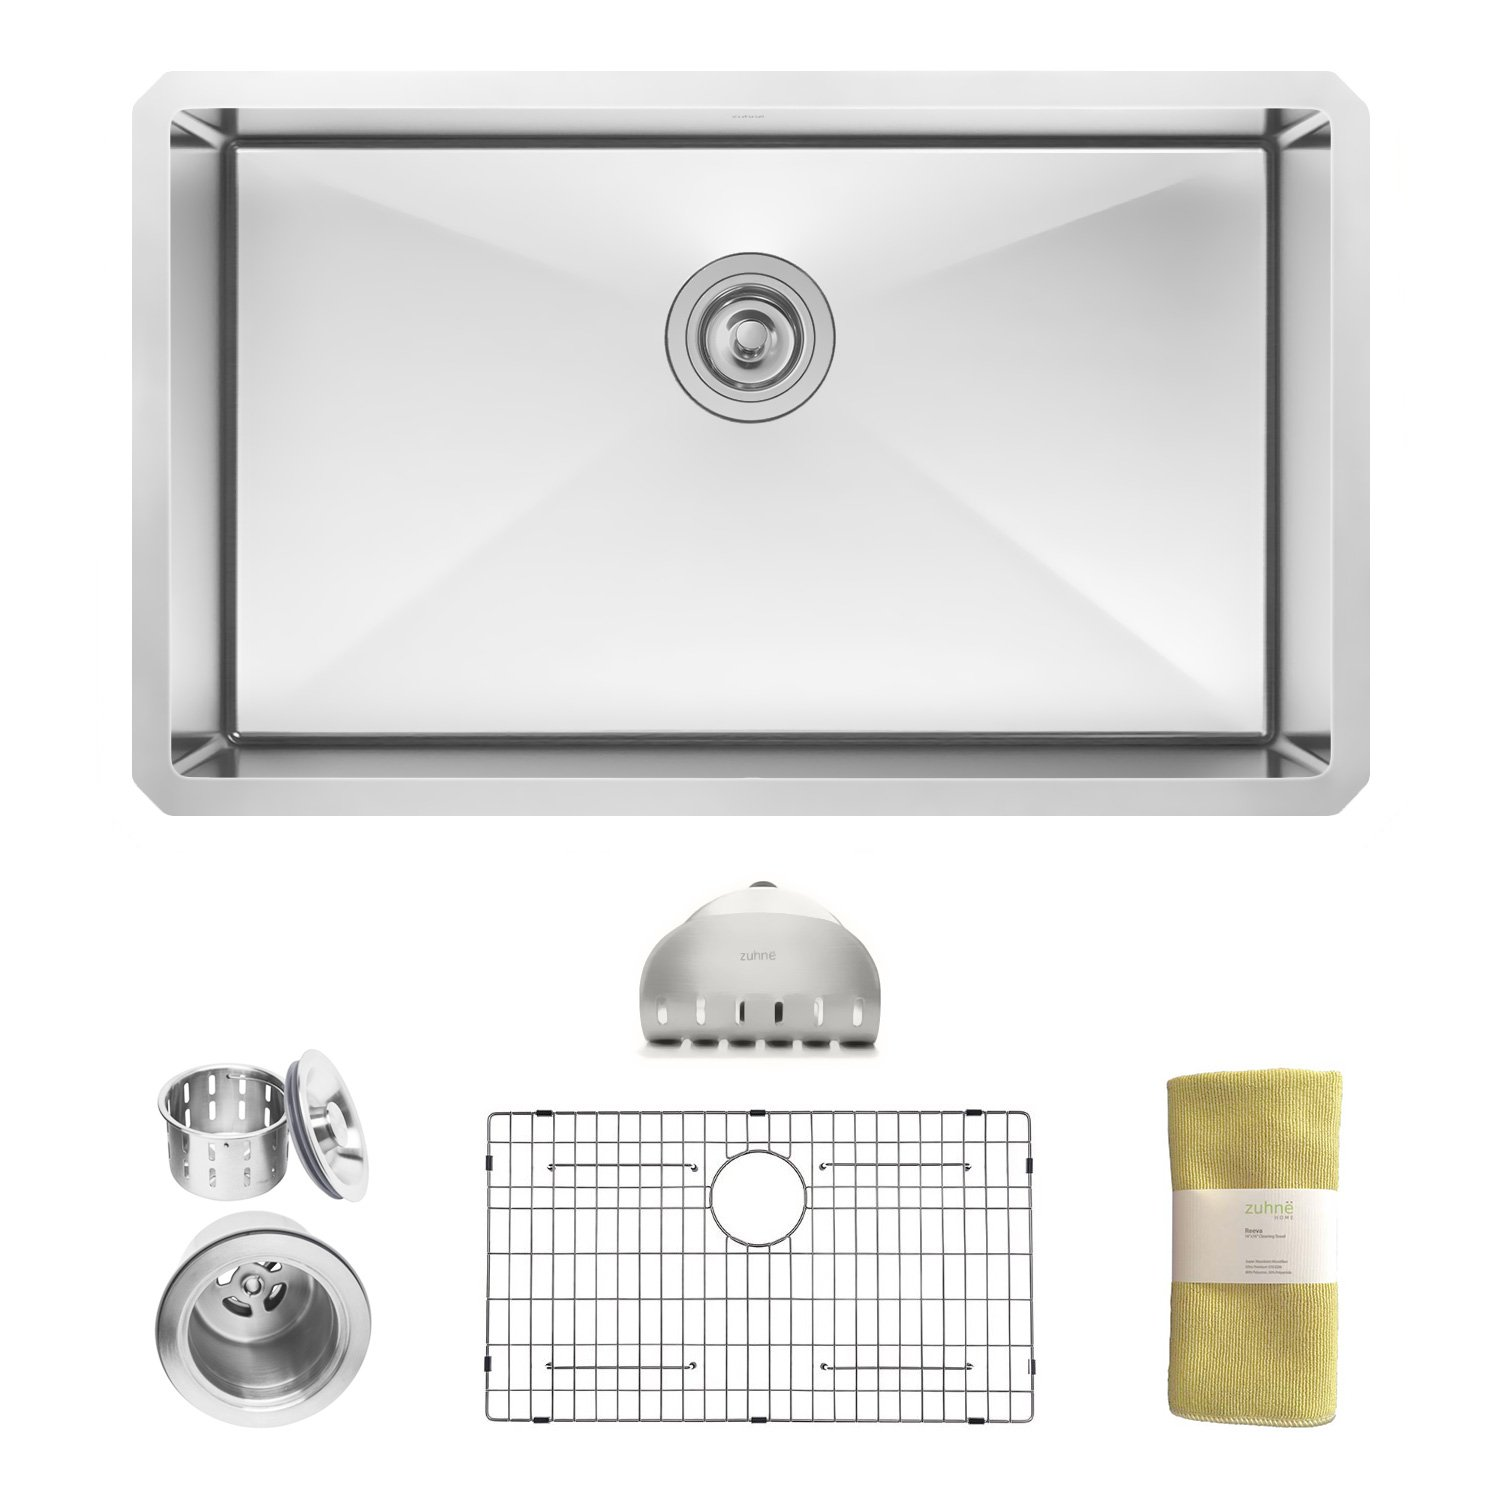 10 inch deep stainless steel kitchen sink zuhne 32 inch undermount single bowl 16 9679